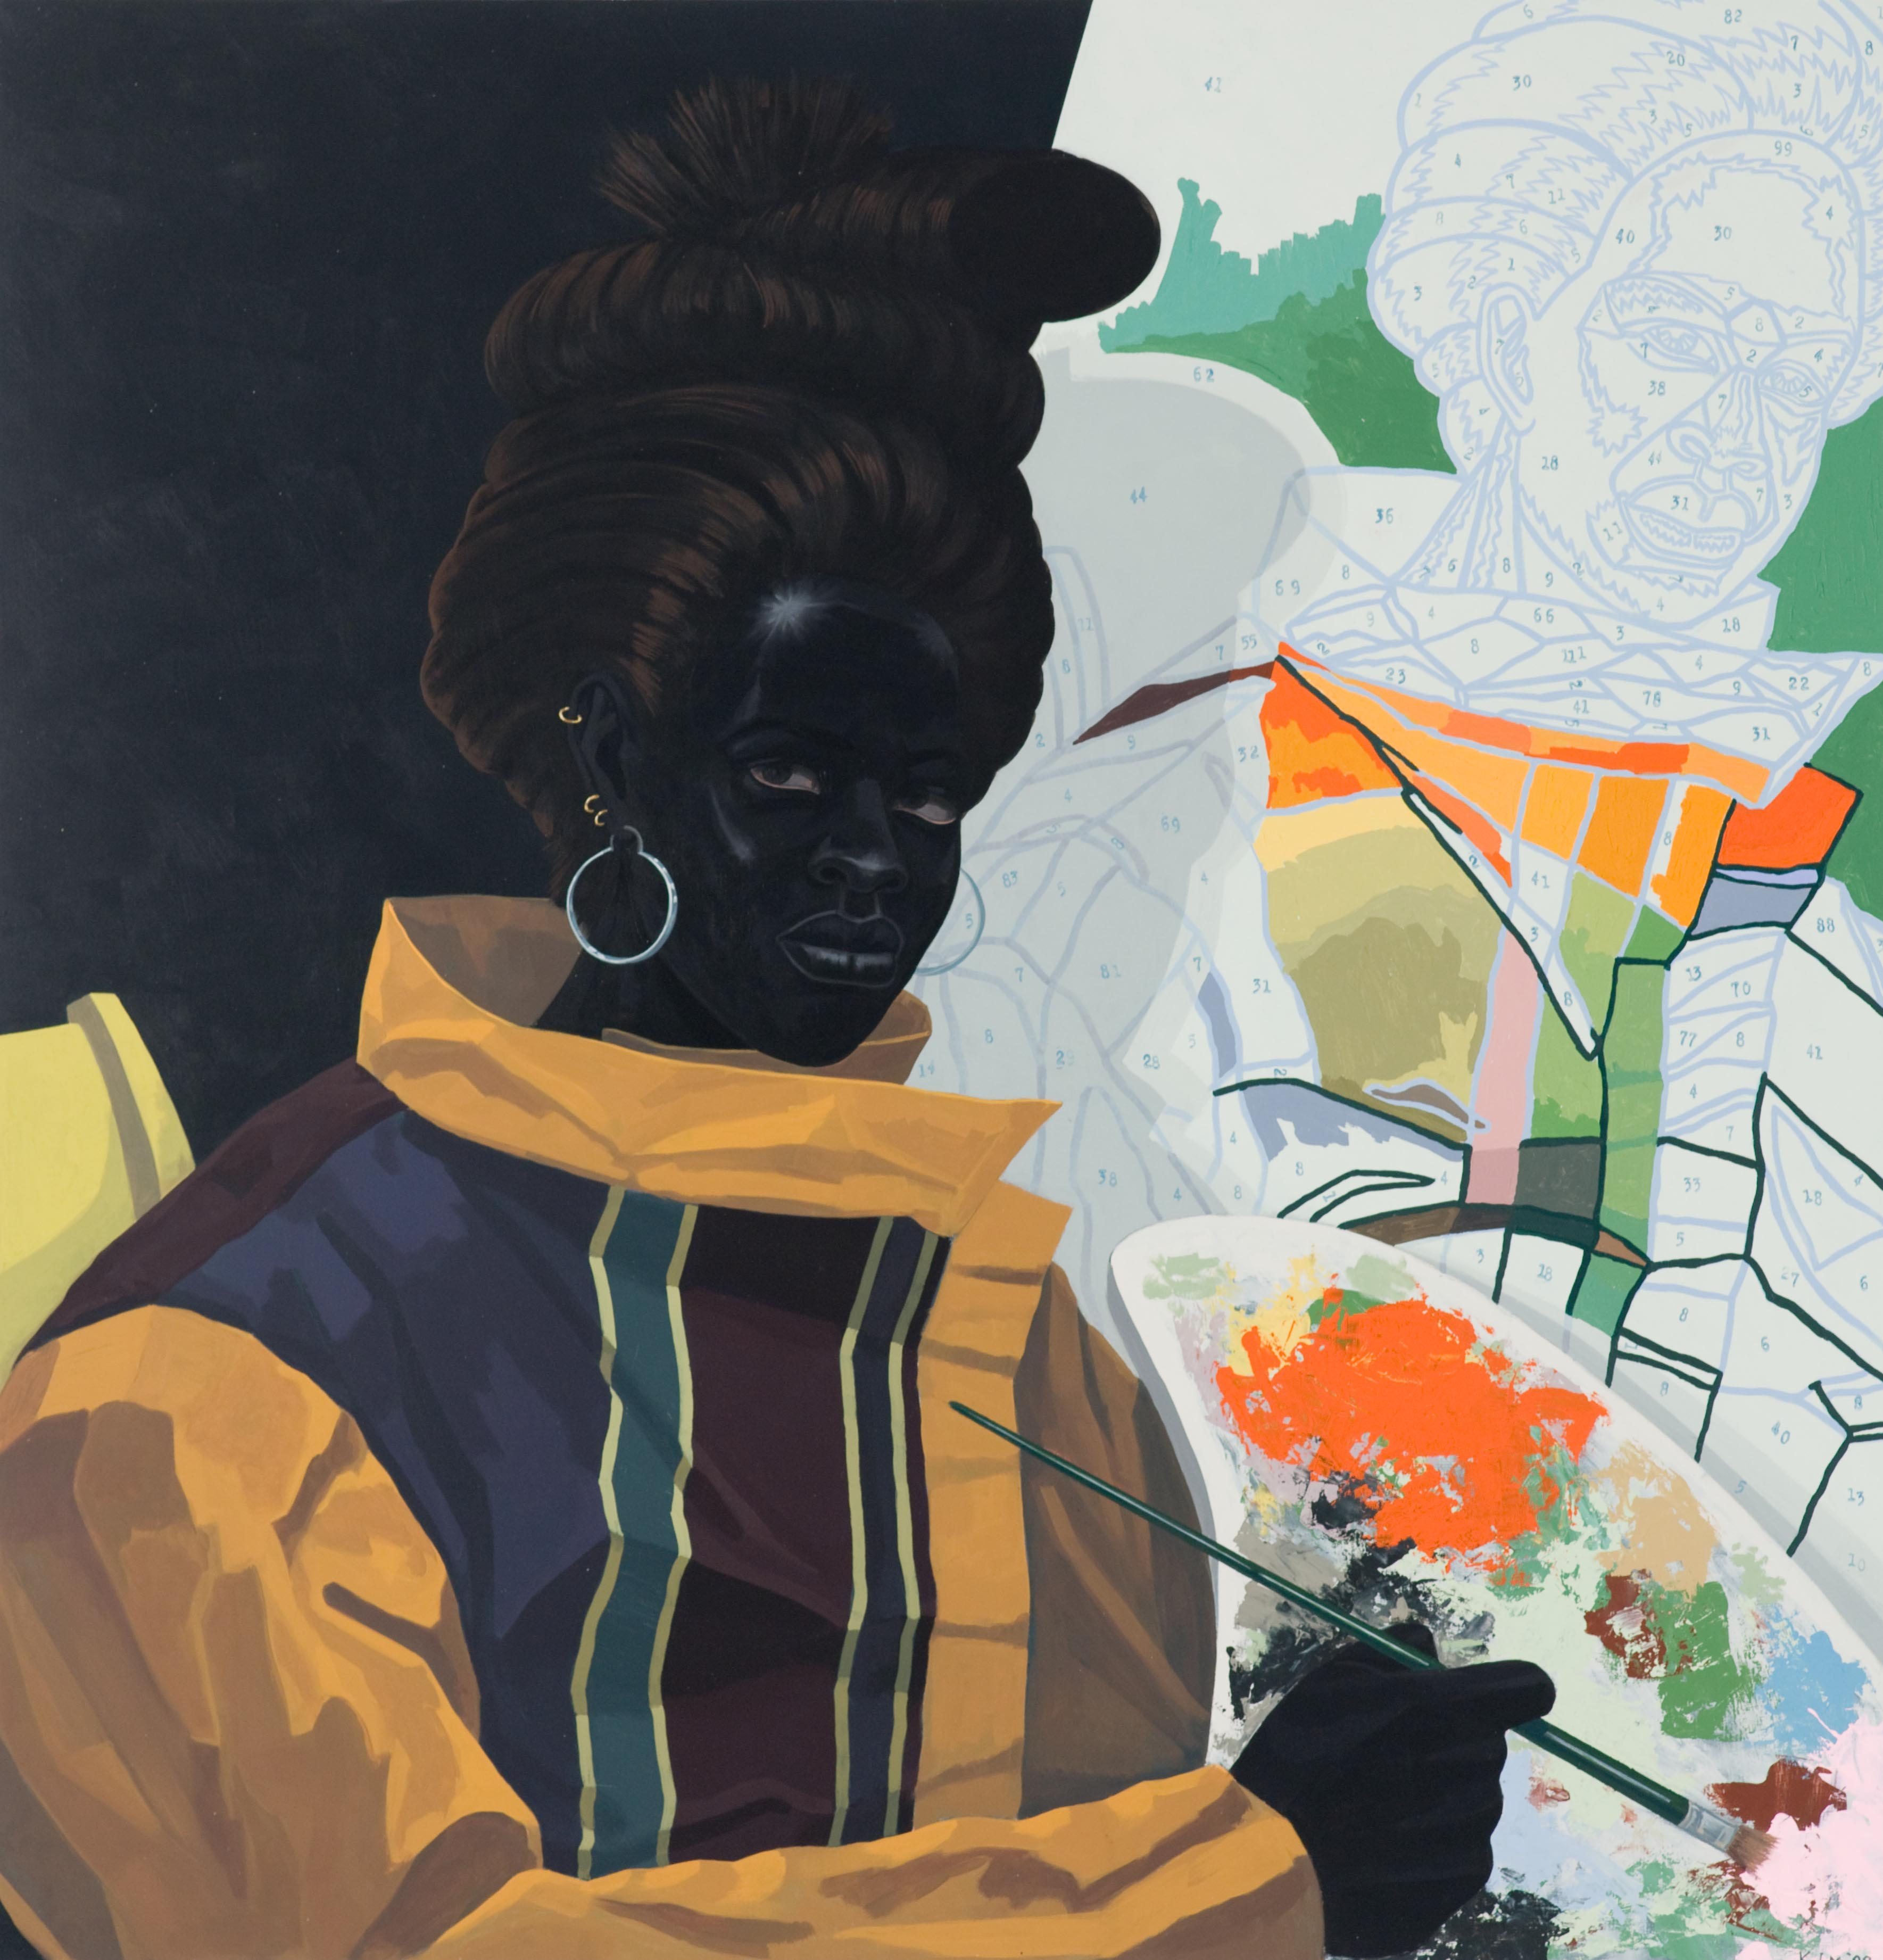 Kerry James Marshall. American, born Birmingham, Alabama 1955. Untitled (Painter) 2009. Acrylic on PVC panel 44 5/8 × 43 1/8 × 3 7/8 in. (113.3 × 109.5 × 9.8 cm). Museum of Contemporary Art Chicago, gift of Katherine S. Schamberg by exchange, 2009.15 © Kerry James Marshall Photo: Nathan Keay, © MCA Chicago.